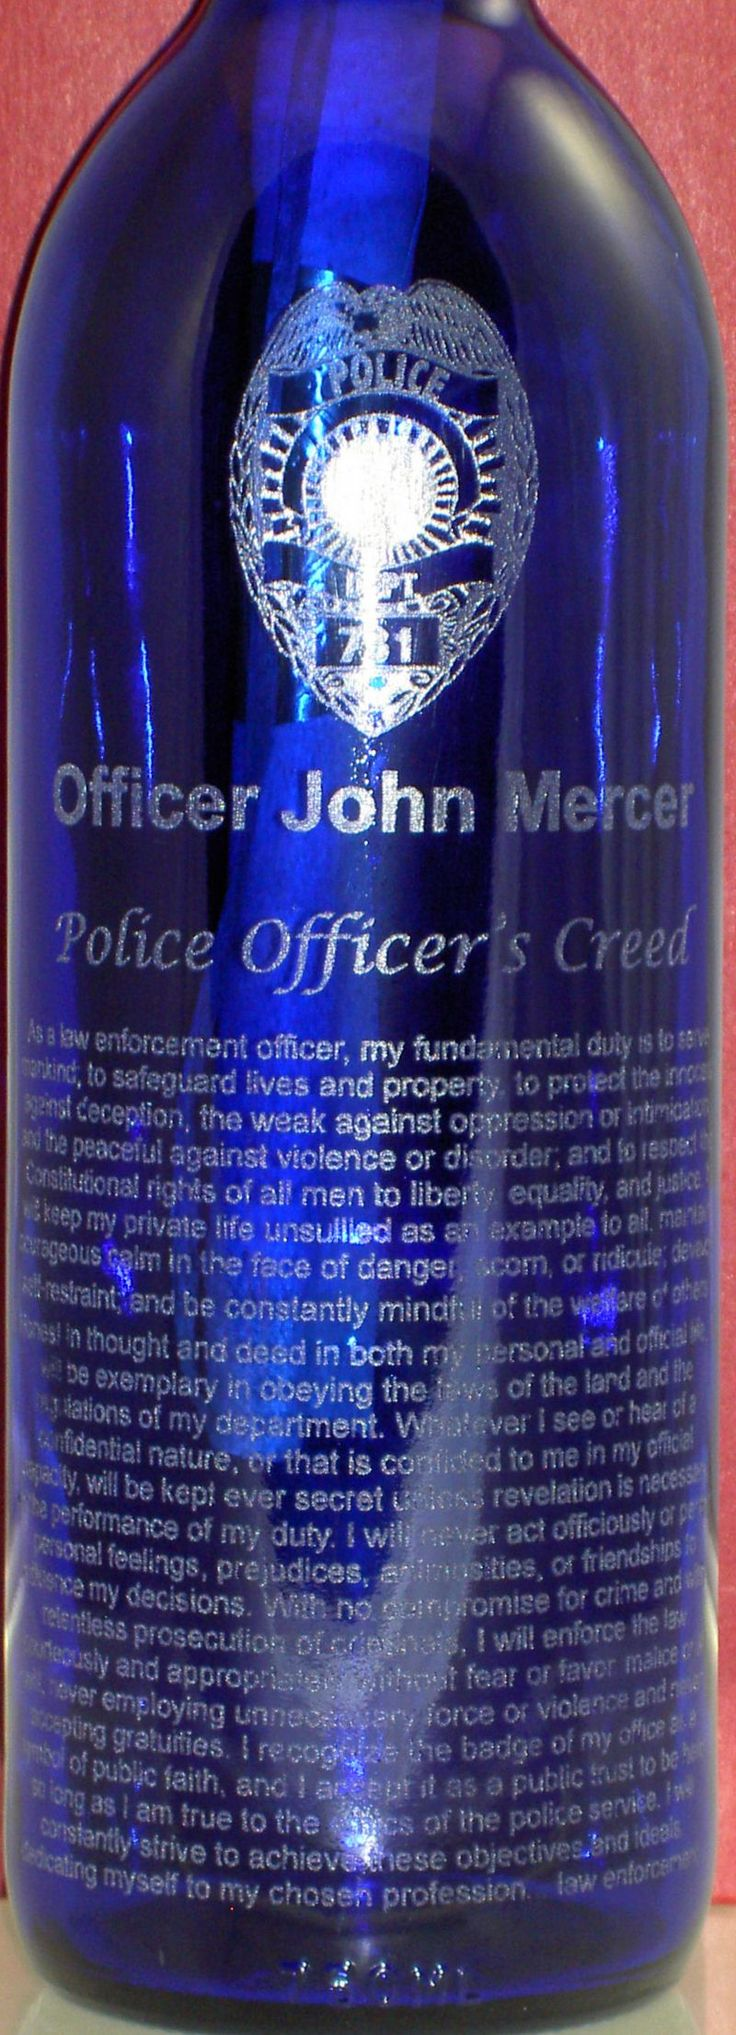 cool gift idea for anyone serving in law enforcement-free engraving too! $39.95 available at: http://www.onepassionplace.com/messageslawenforcementpolice.htm